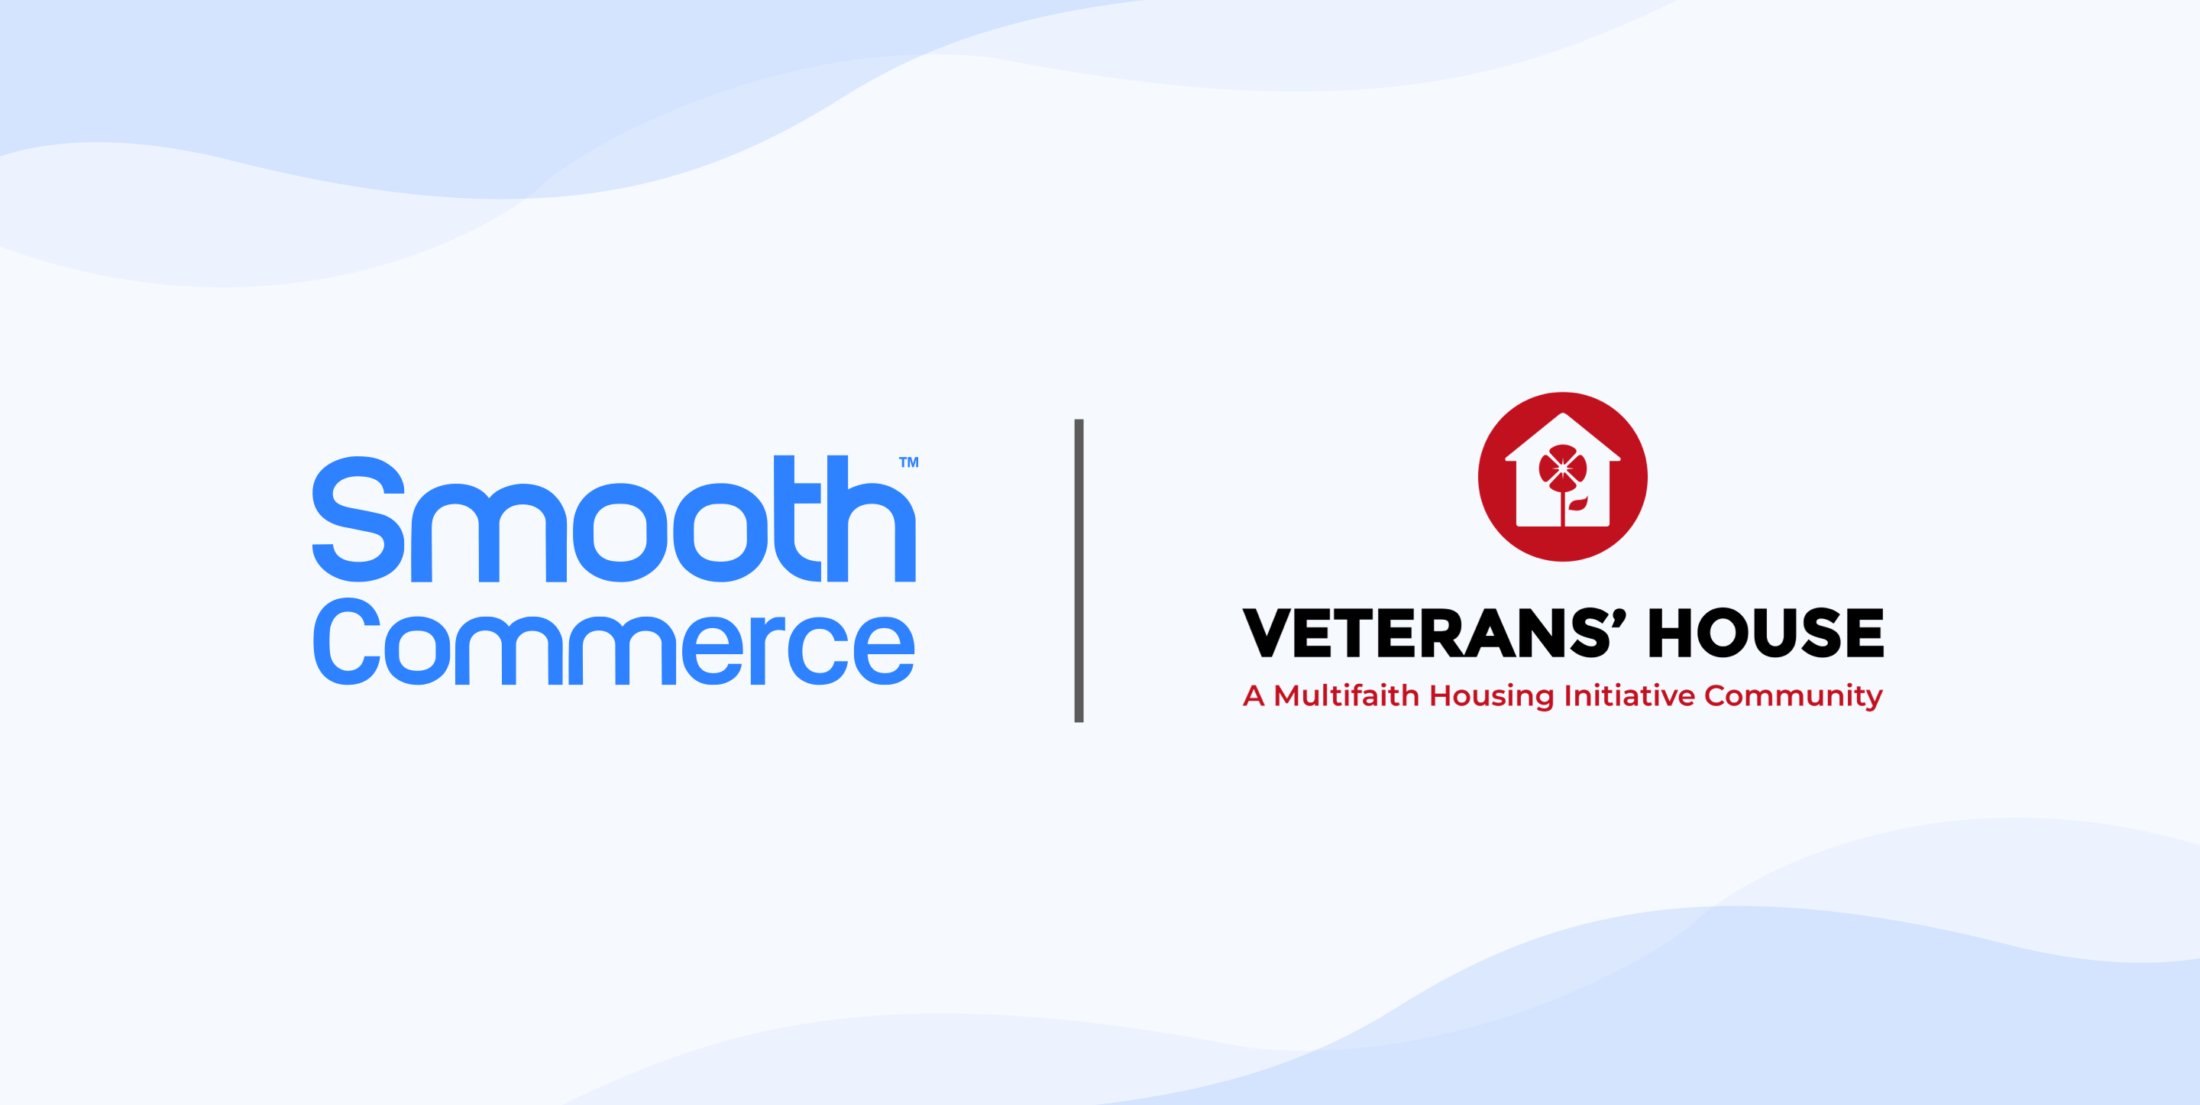 Smooth Commerce and Veterans' House logos